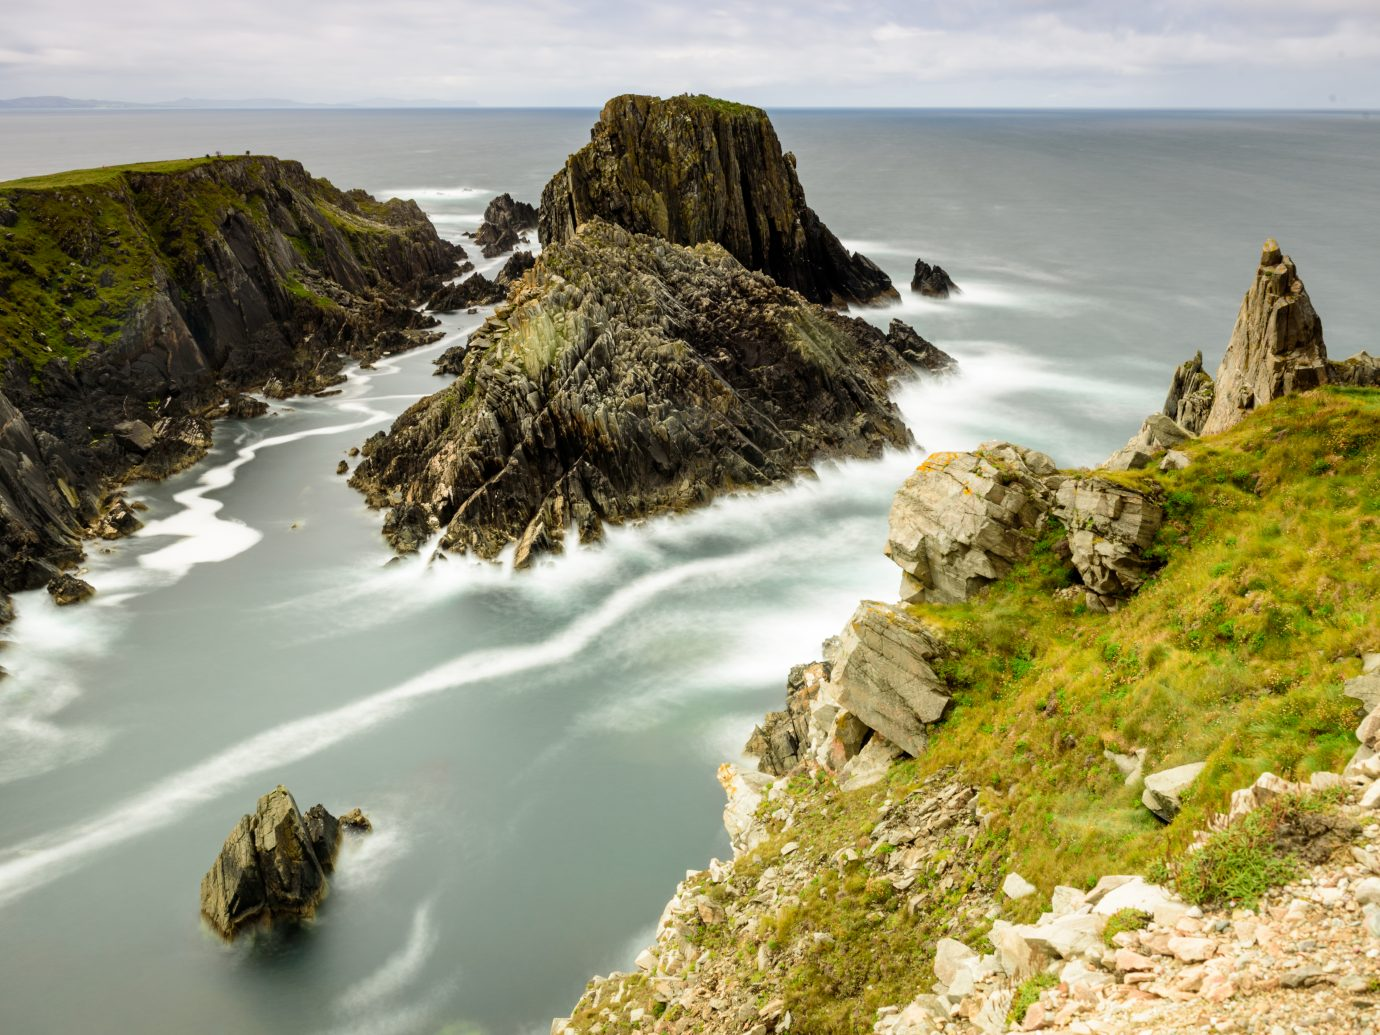 Malin Head rocks in Republic of Ireland